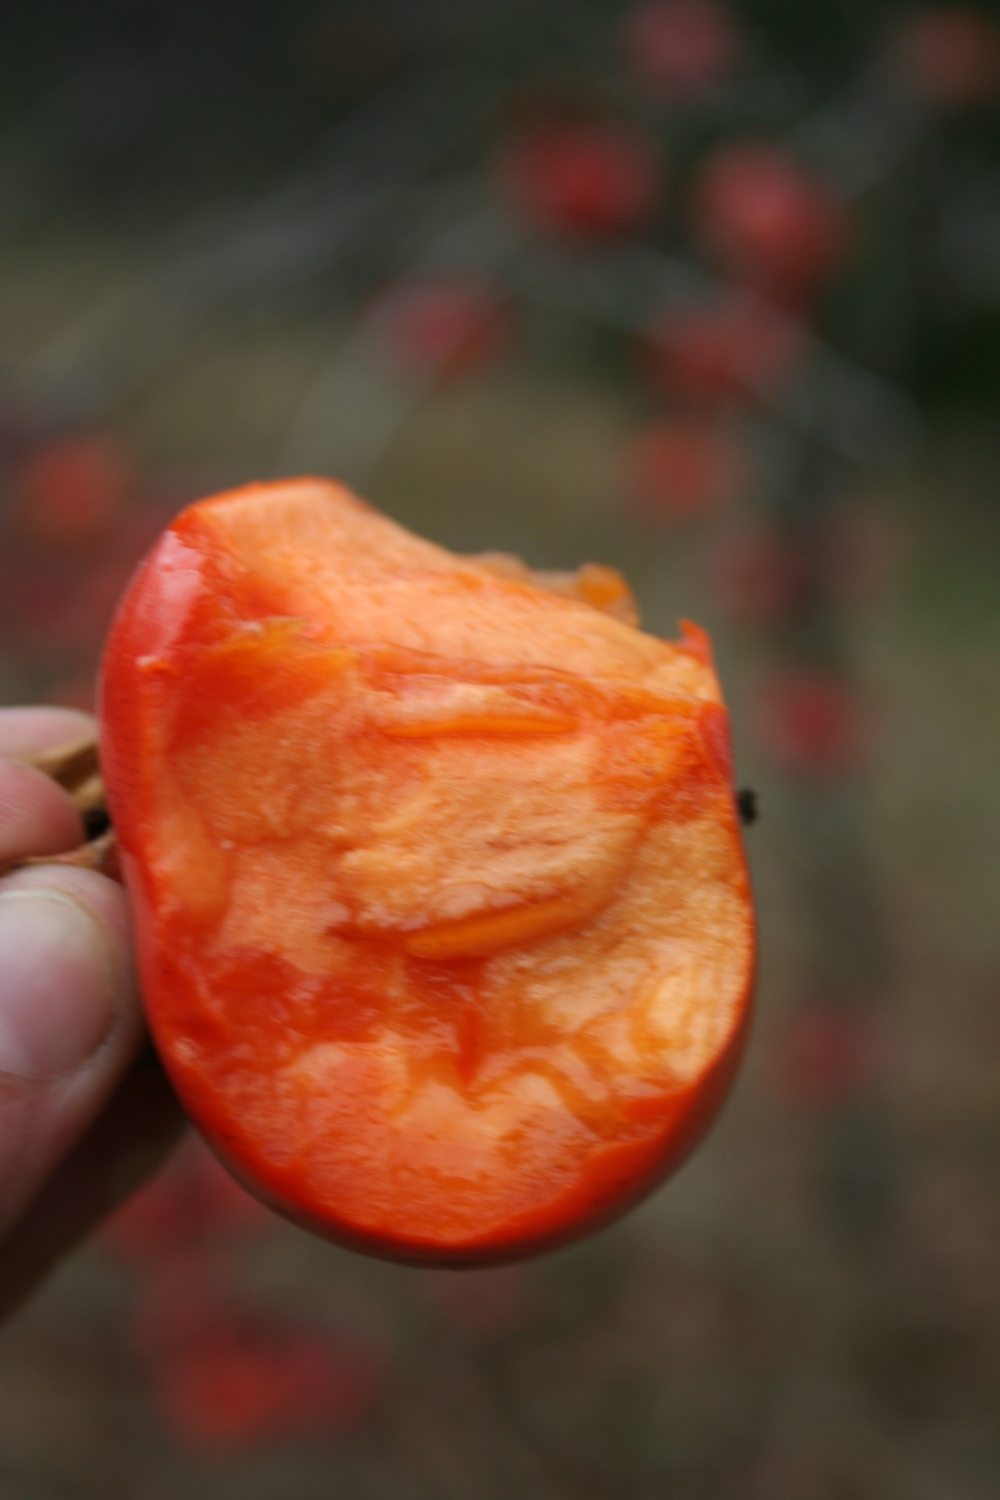 Flesh of the Japanese persimmon